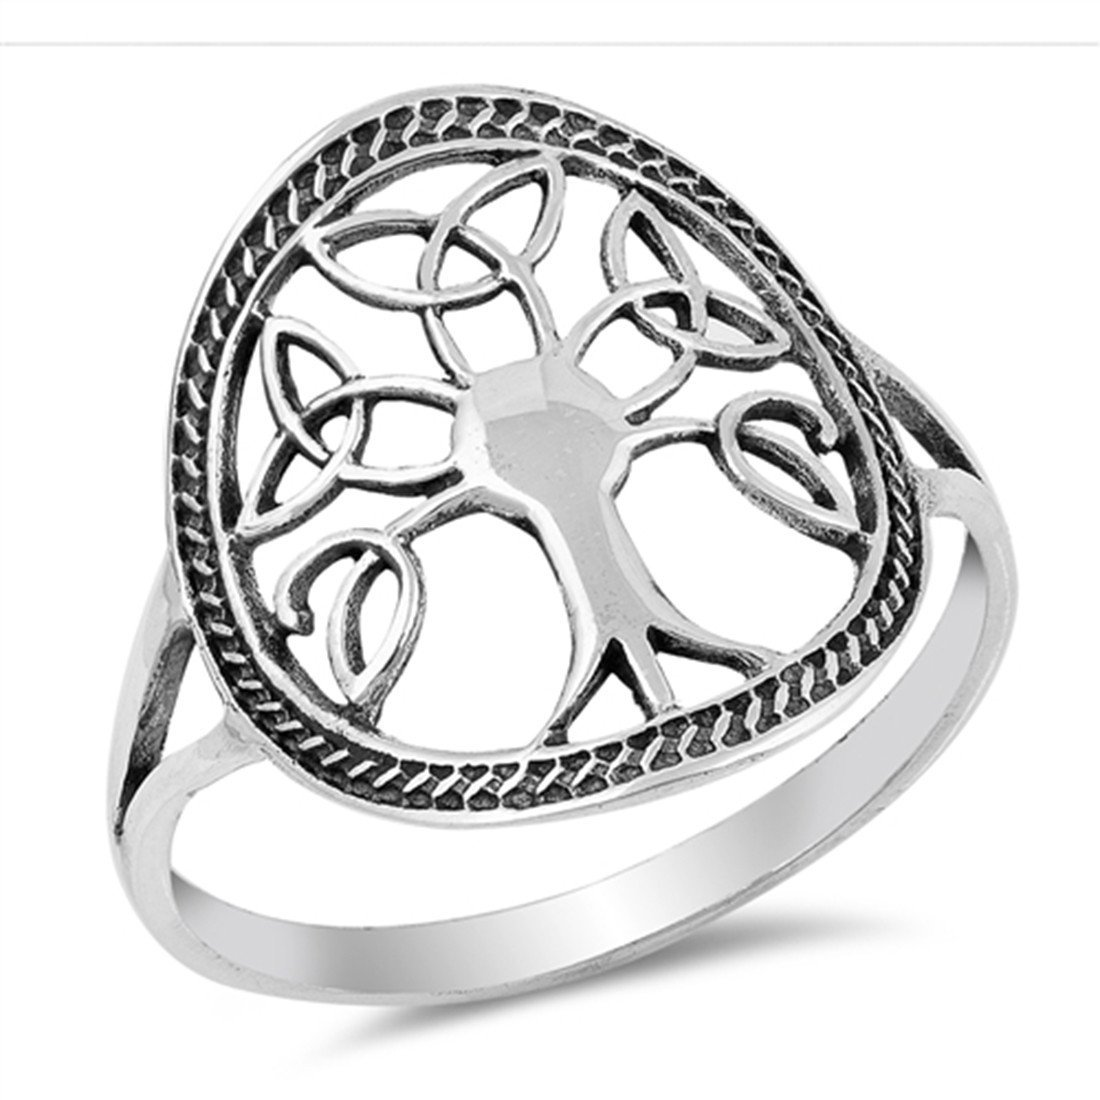 1100x1100 Celtic Tree Of Life Band Ring Sterling Silver Simple Plain